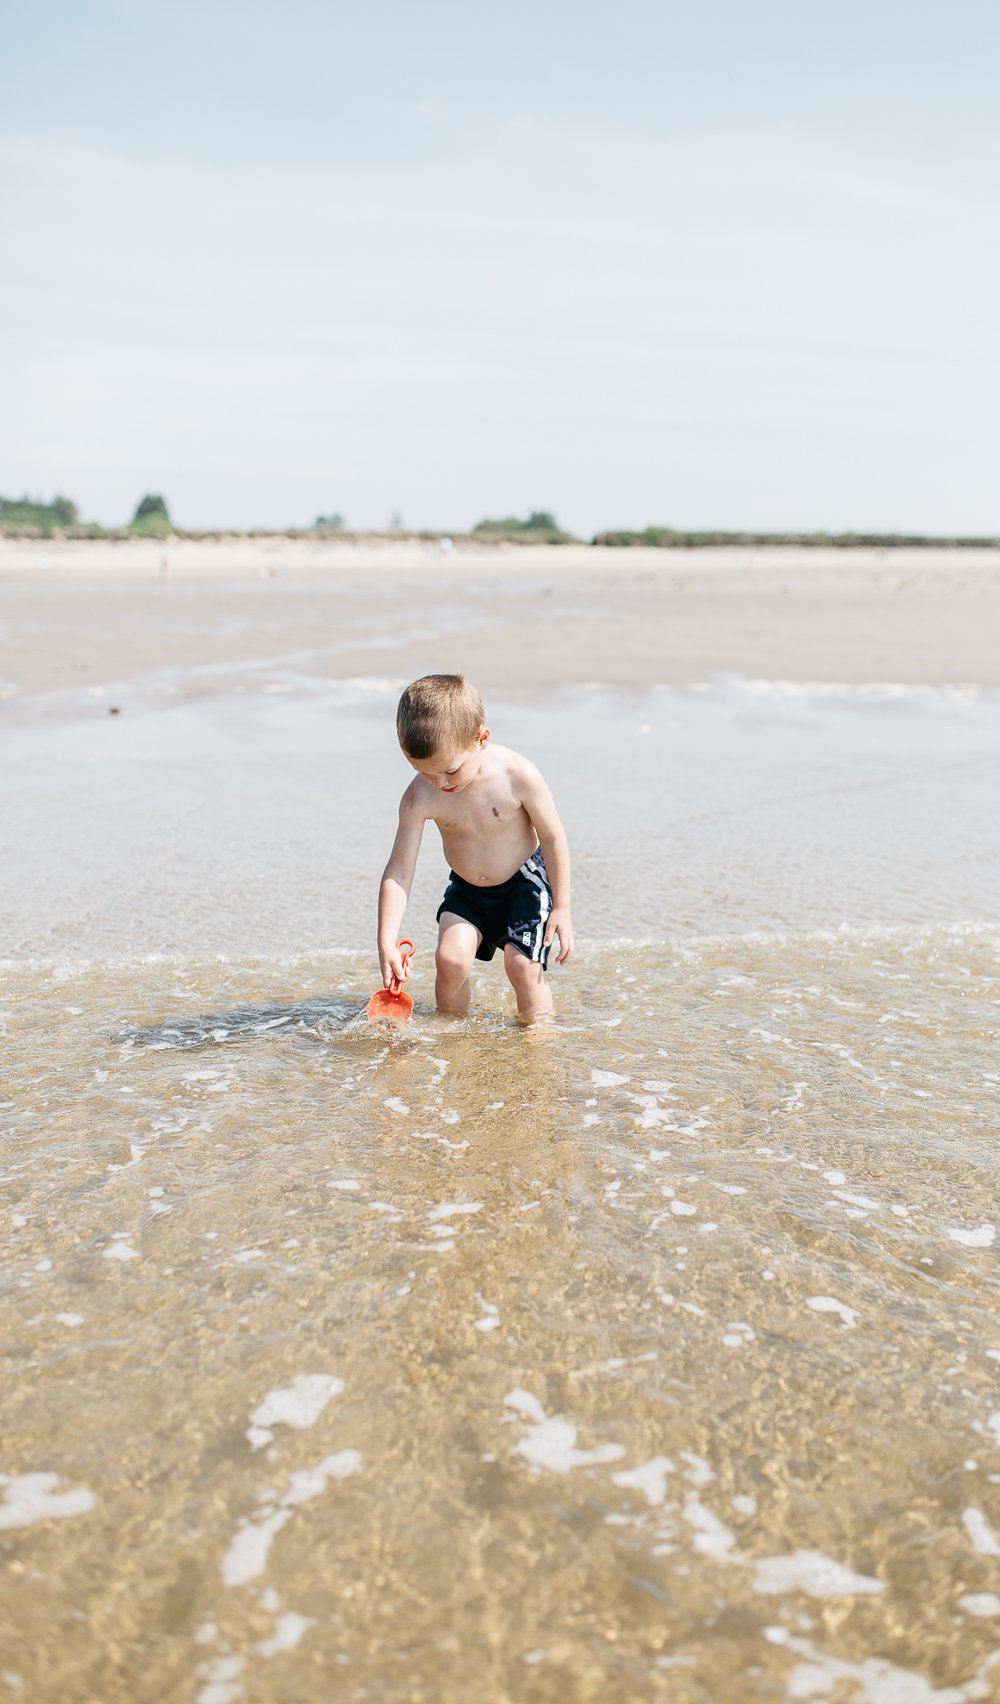 maine-photographer-family-children-lifestyle-documentary-beach-photography-8.jpg